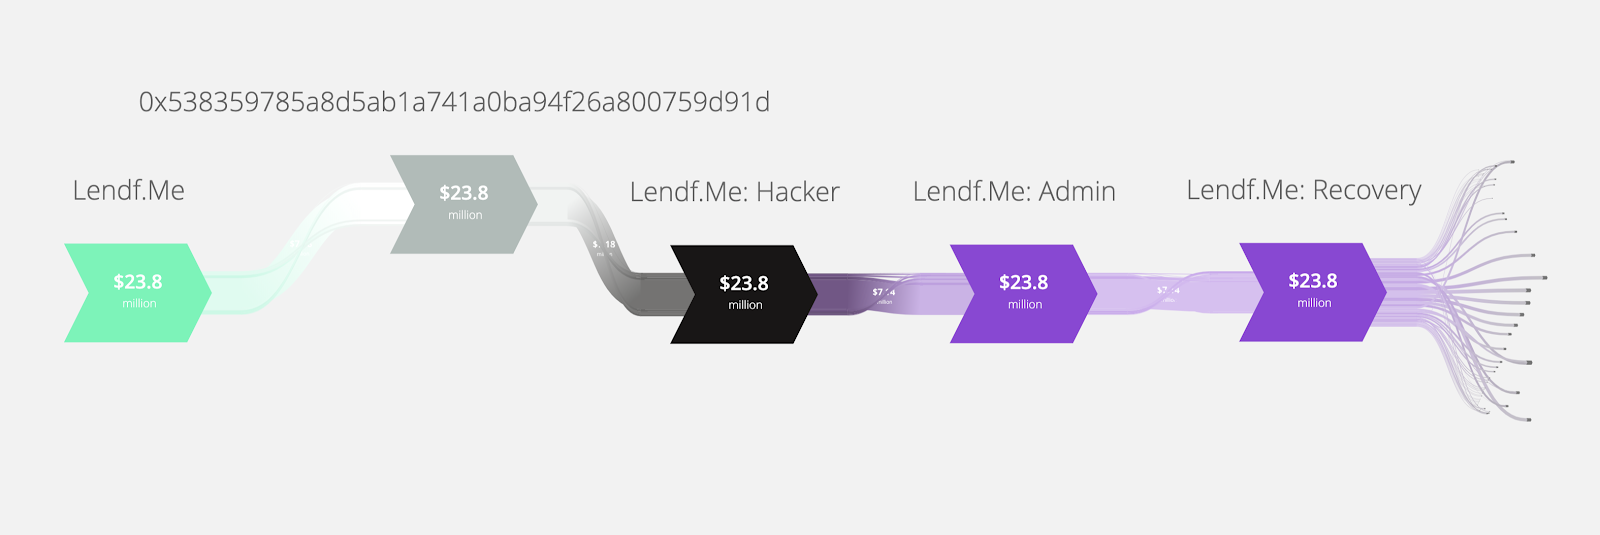 Fig 4. Funds Flow Throughout Lendf.Me Incident